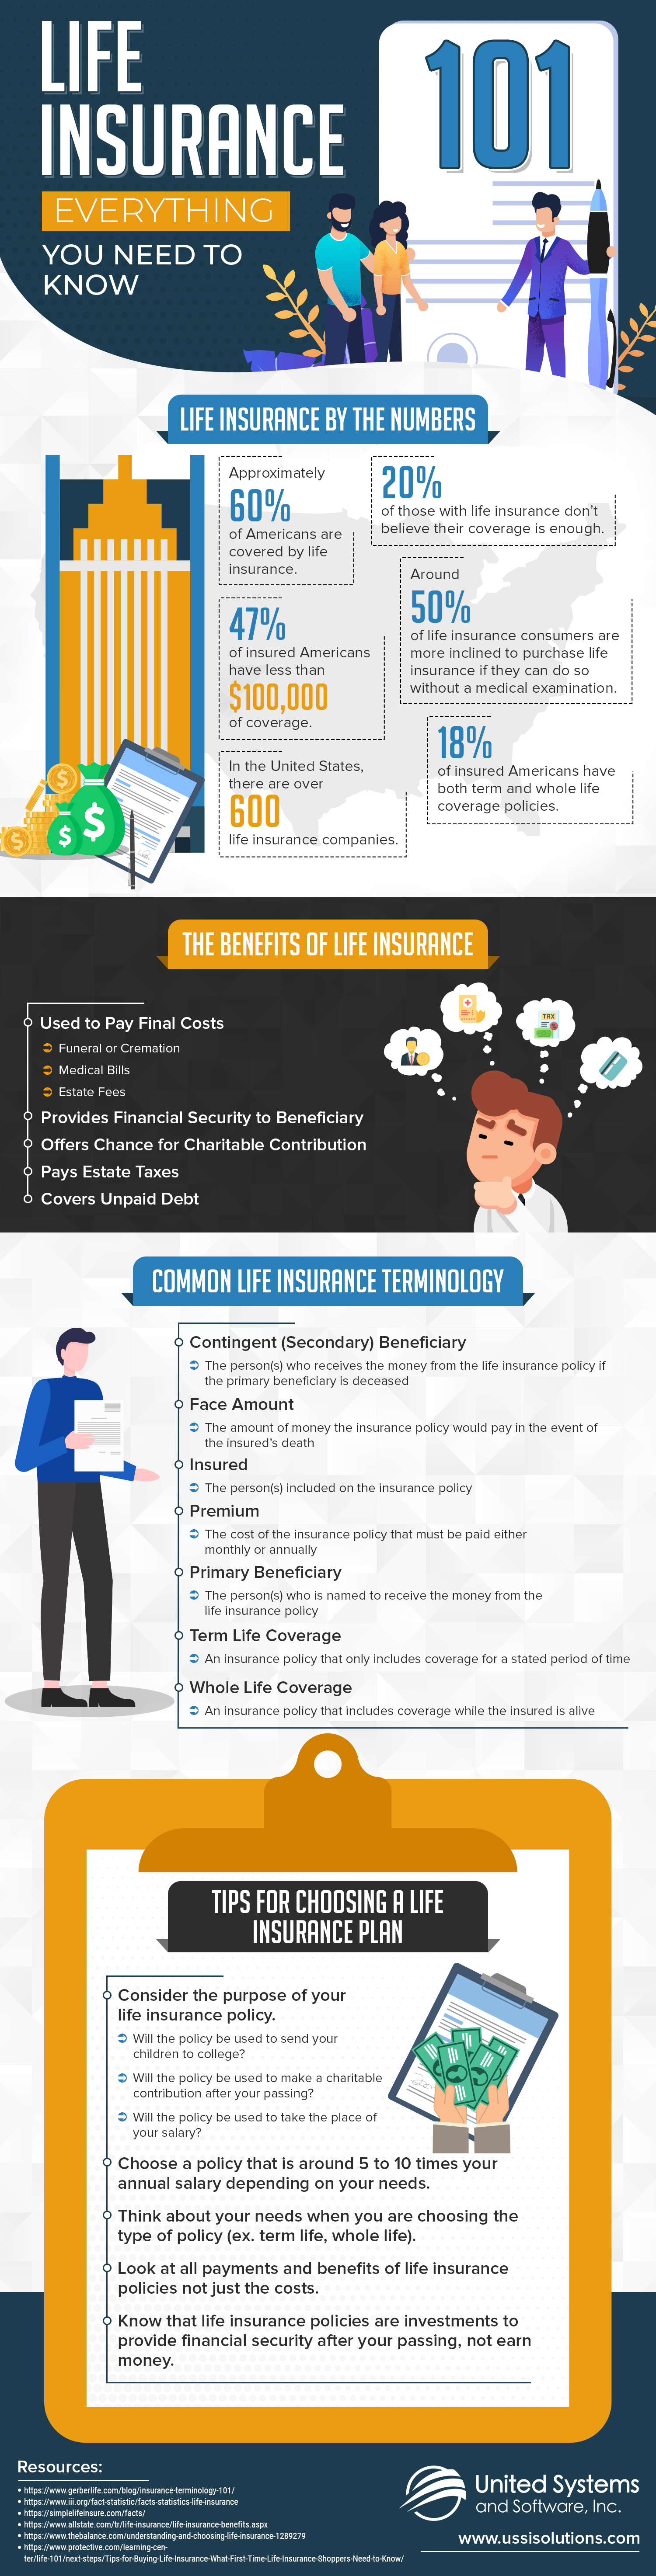 How to Choose the Best Life Insurance Plan for Your Needs ...